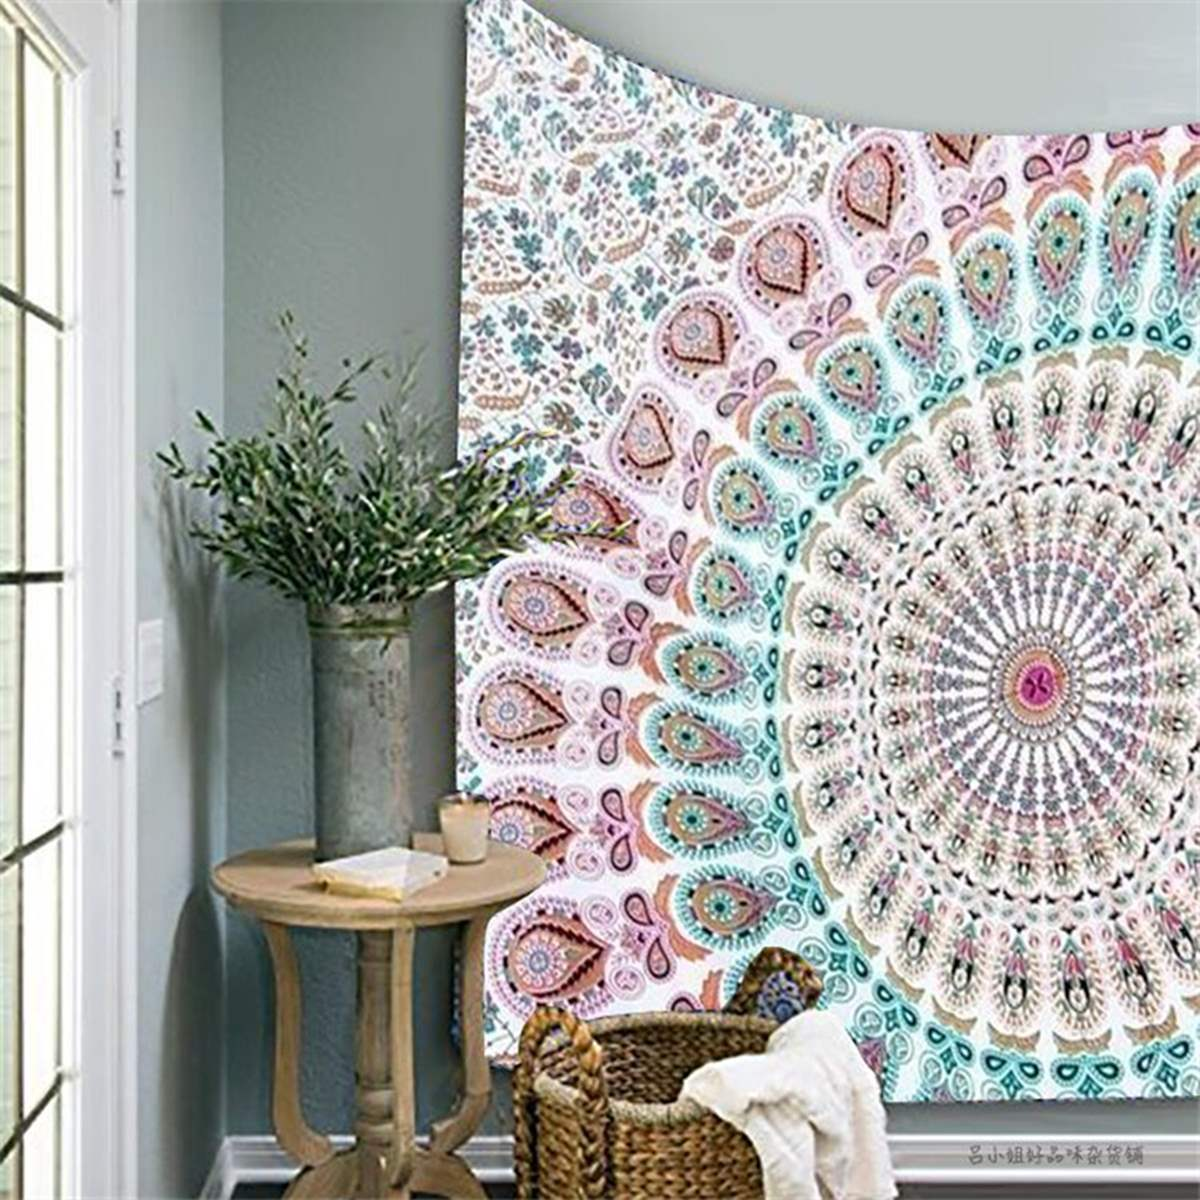 How To Hang A Tapestry On The Wall popular mandala textil-buy cheap mandala textil lots from china